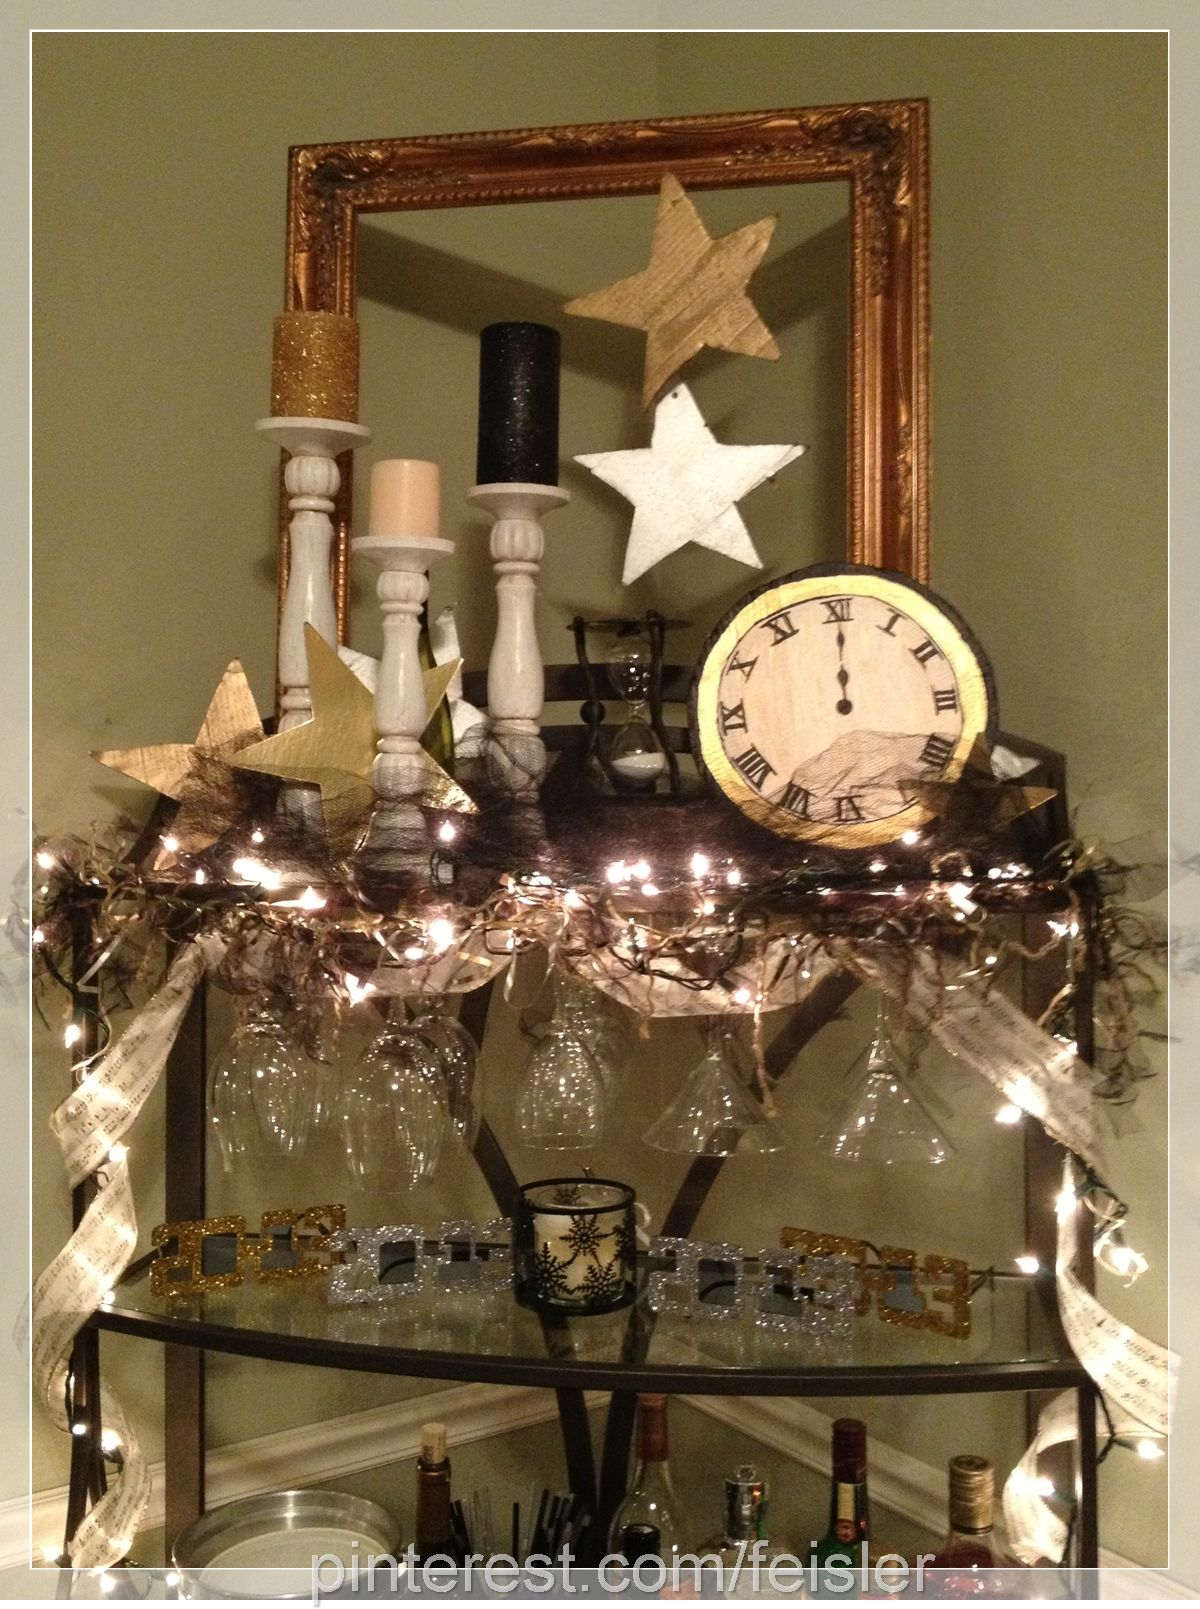 2012 2013 #Newyears #Decoration Idea  Handmade Clock And Stars